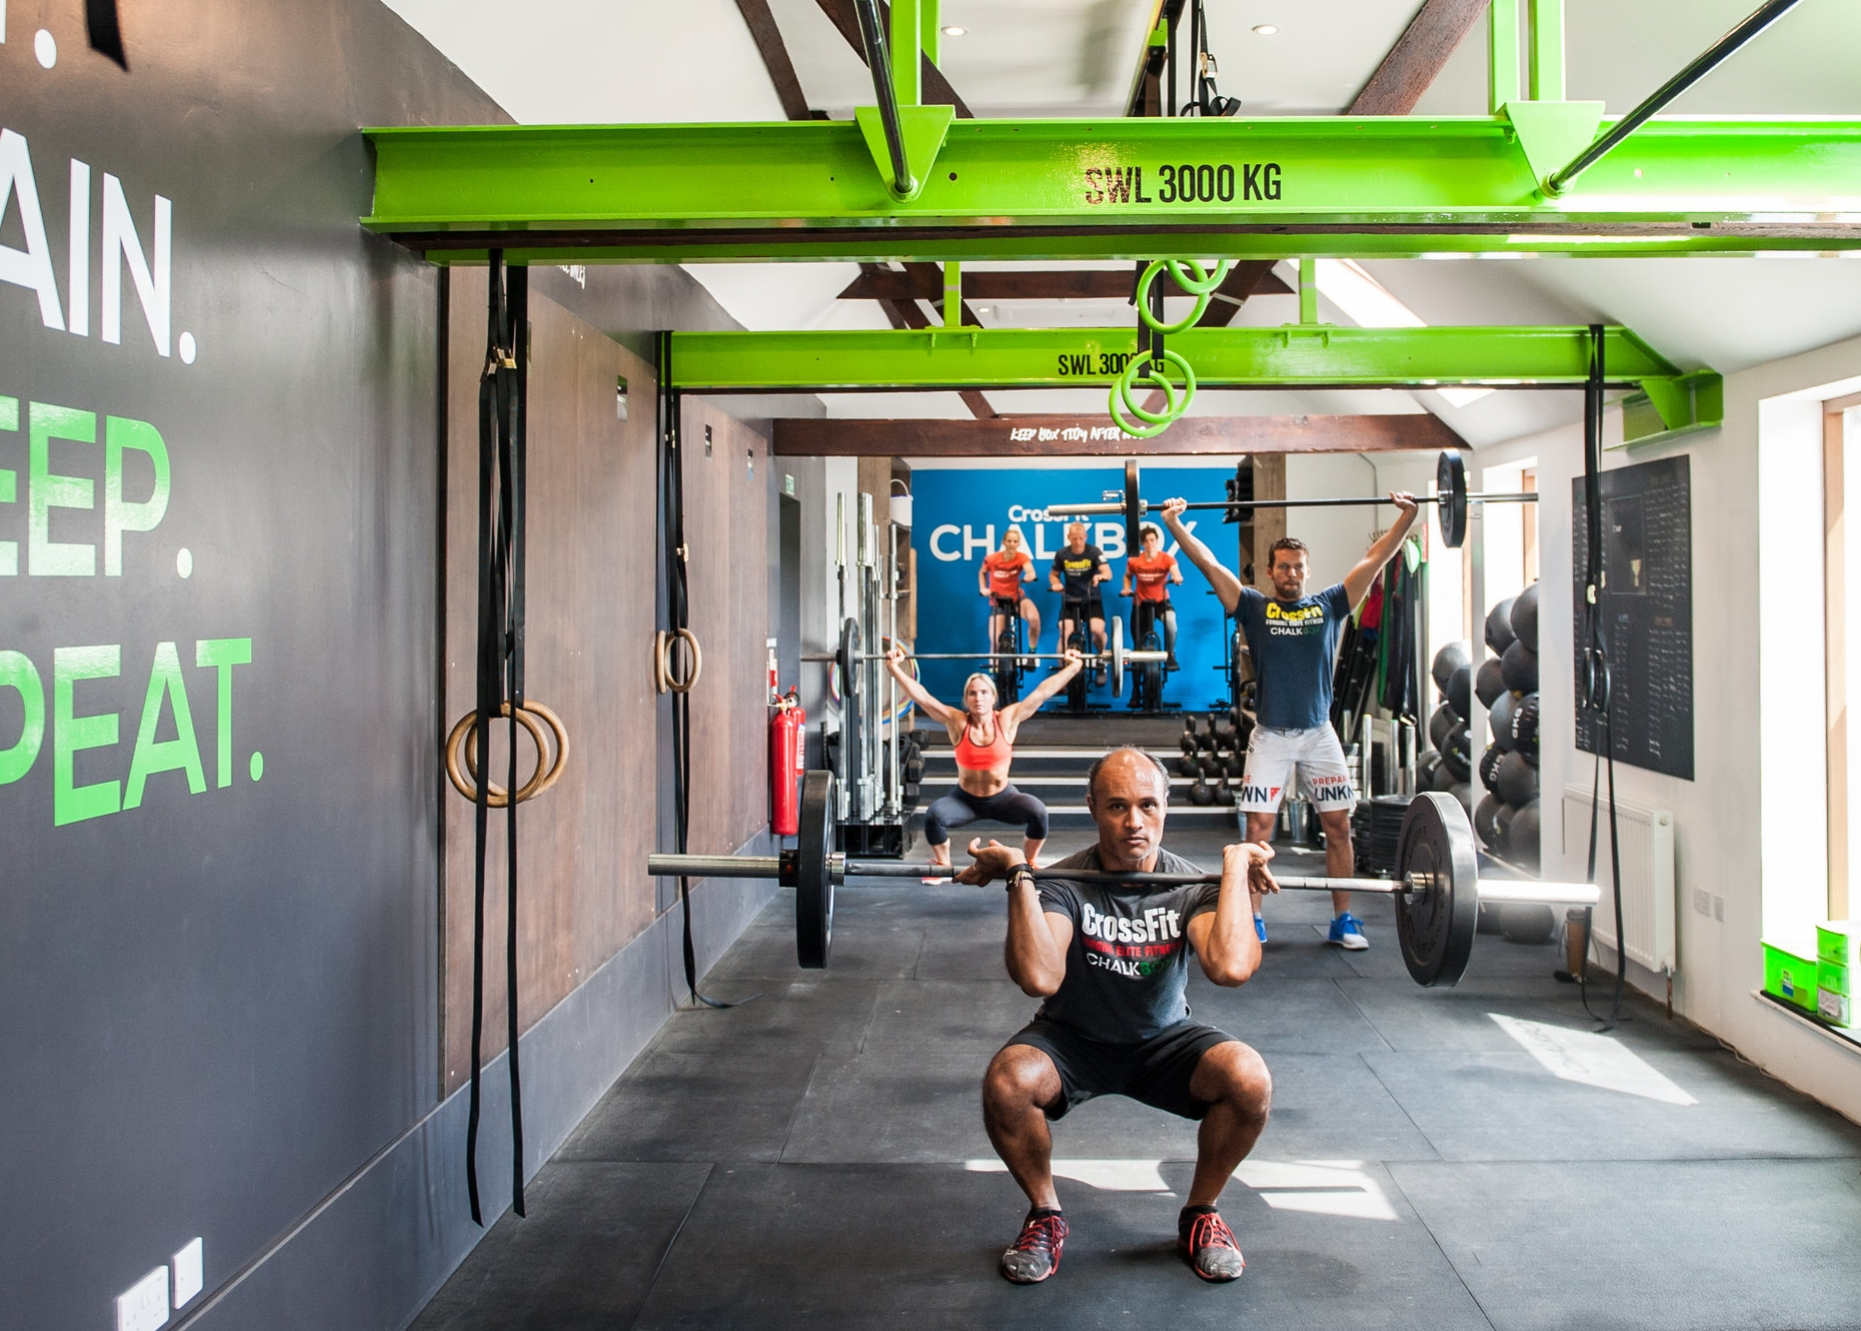 TEAM CHALKBOX:  We are real life people with a passion for fitness and ChalkBox. Our goal is to help you achieve your goals in- and outside the gym.